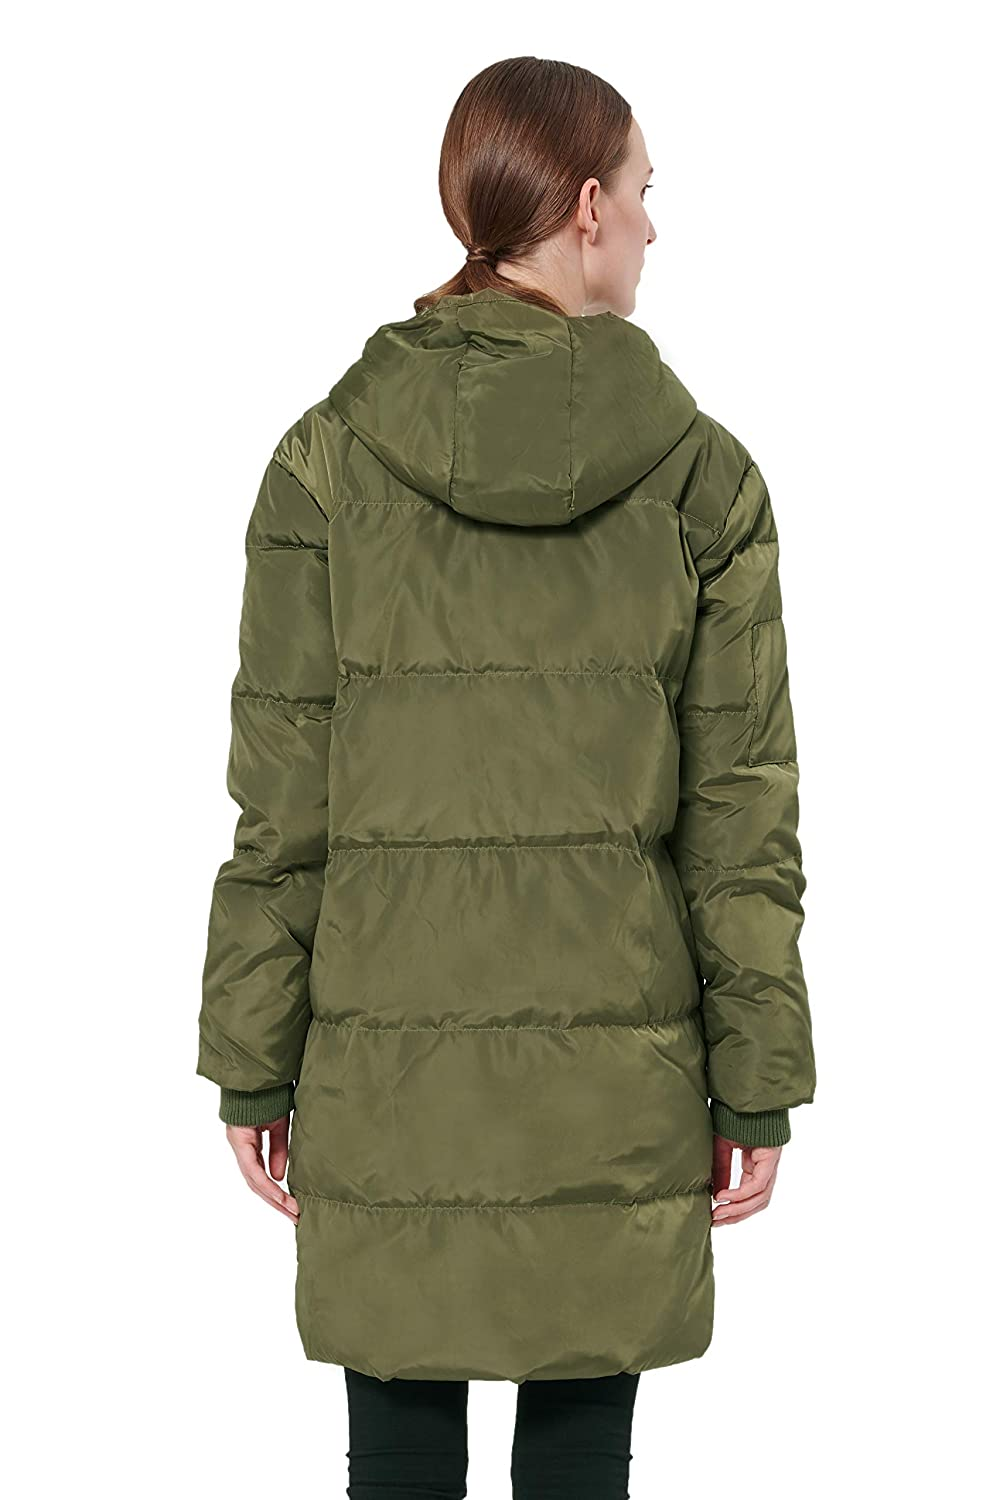 d2cd4de4dc6 Amazon.com: Orolay Women's Thicken Plus Size Down Jacket Hooded Coat:  Clothing